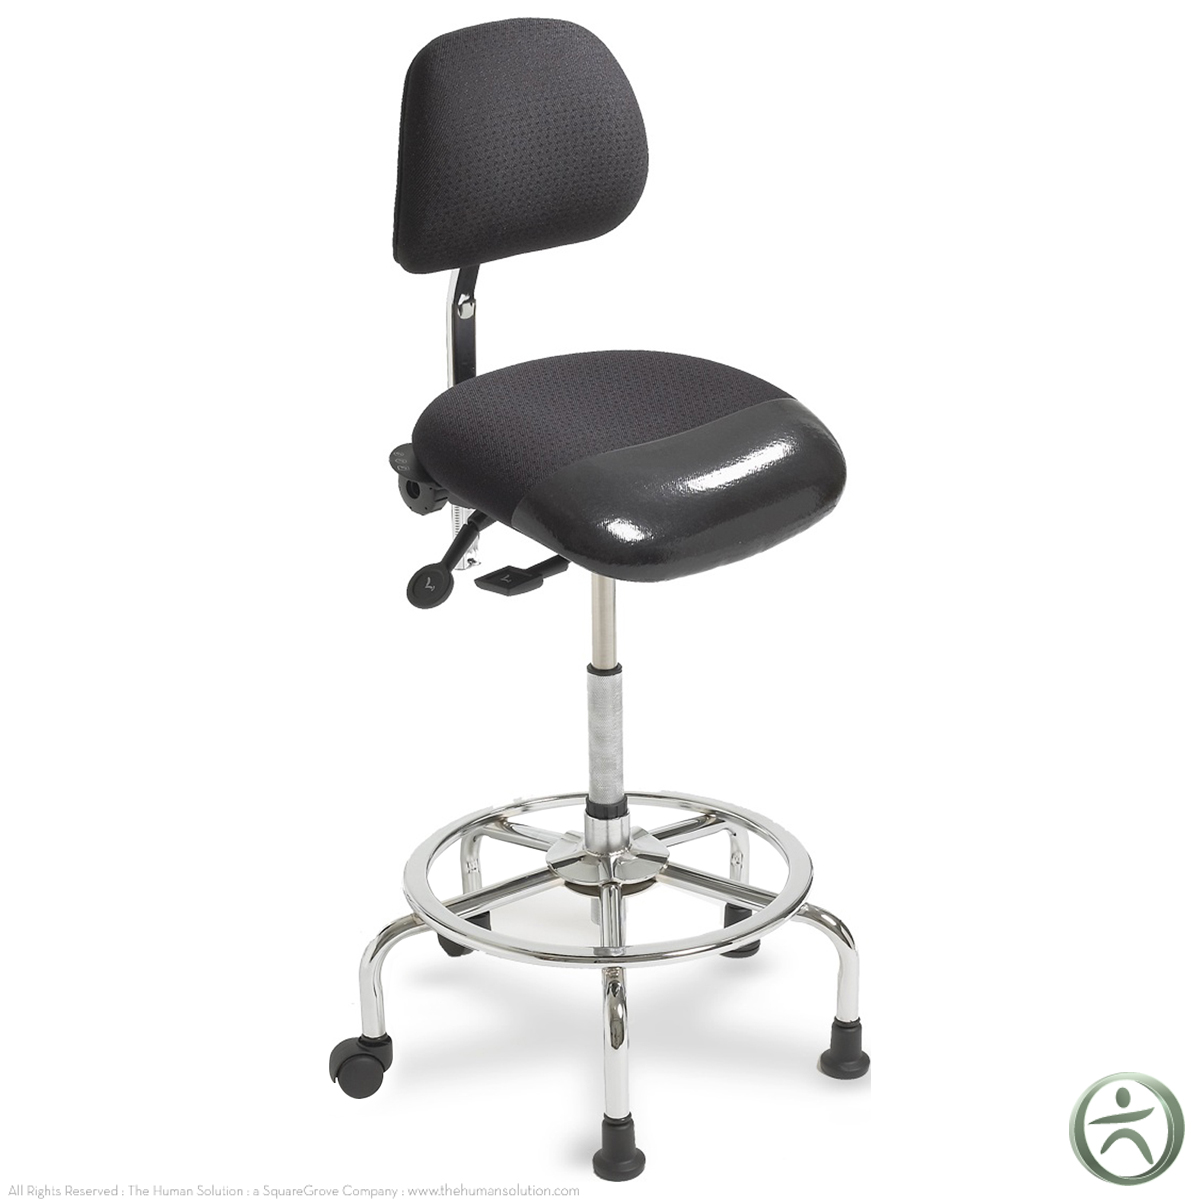 Sitting Chairs Ergocentric 3 In 1 Sit Stand Stool Shop Ergocentric Chairs